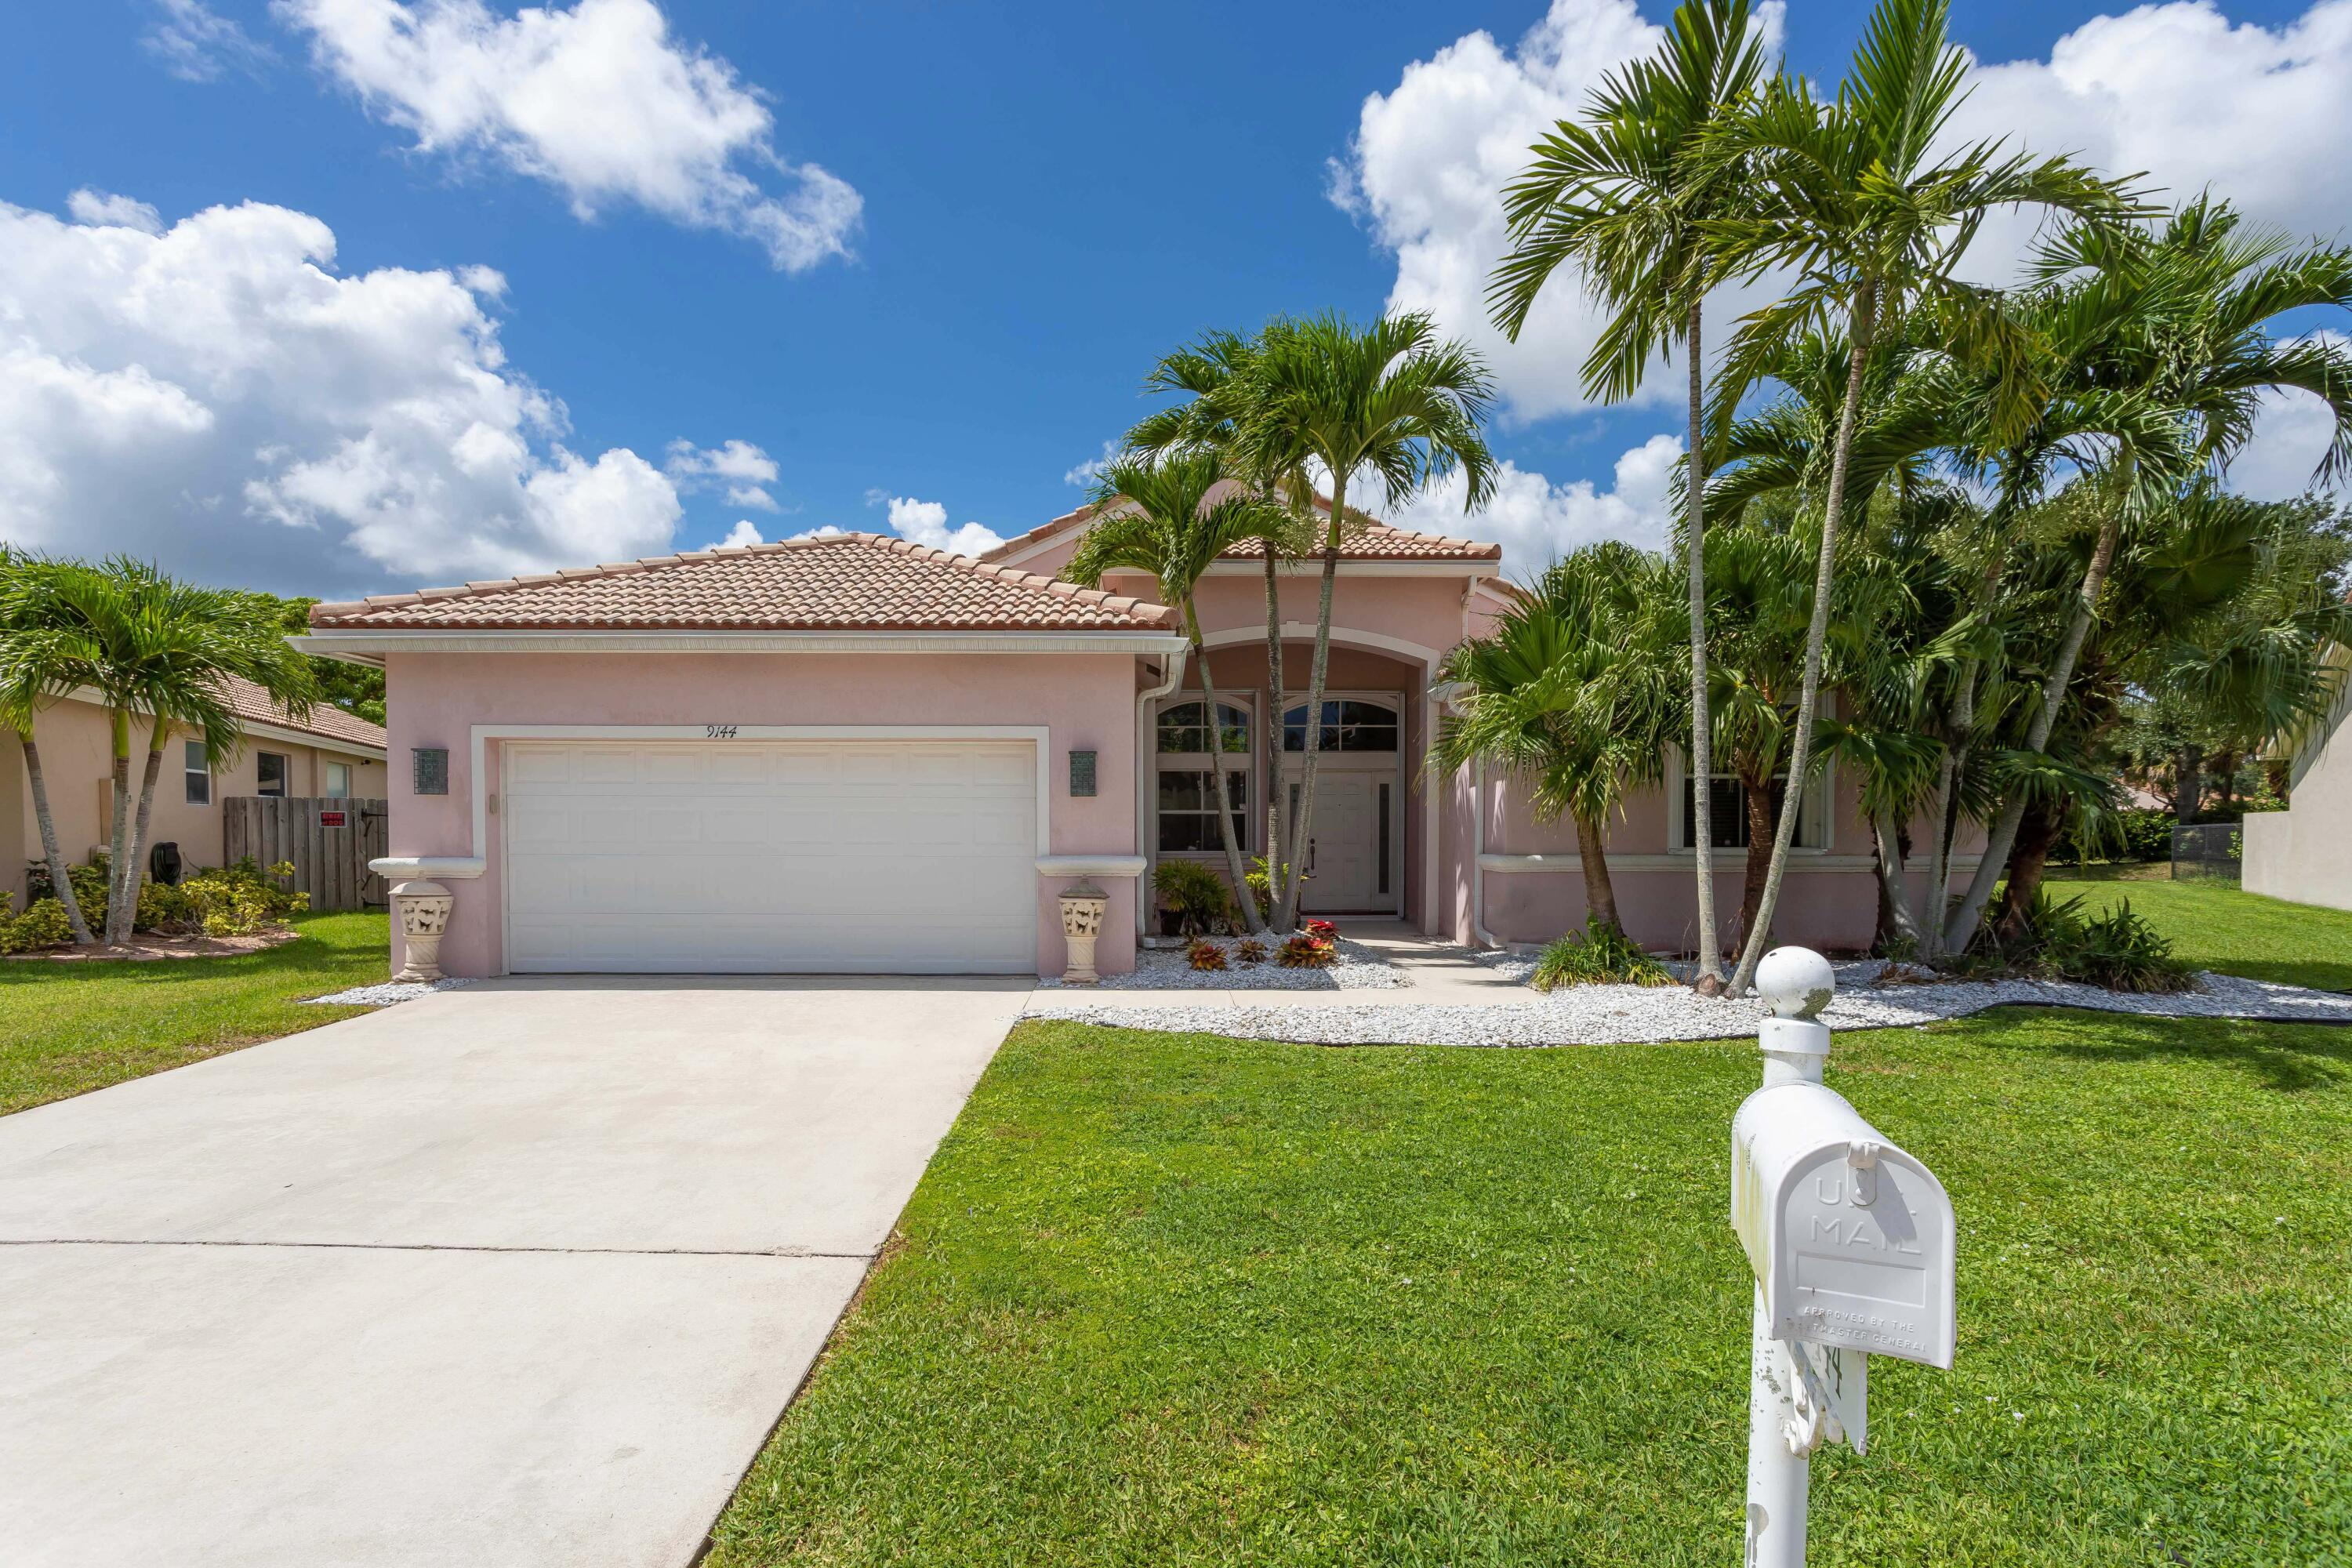 9144  Cove Point Circle  For Sale 10739316, FL